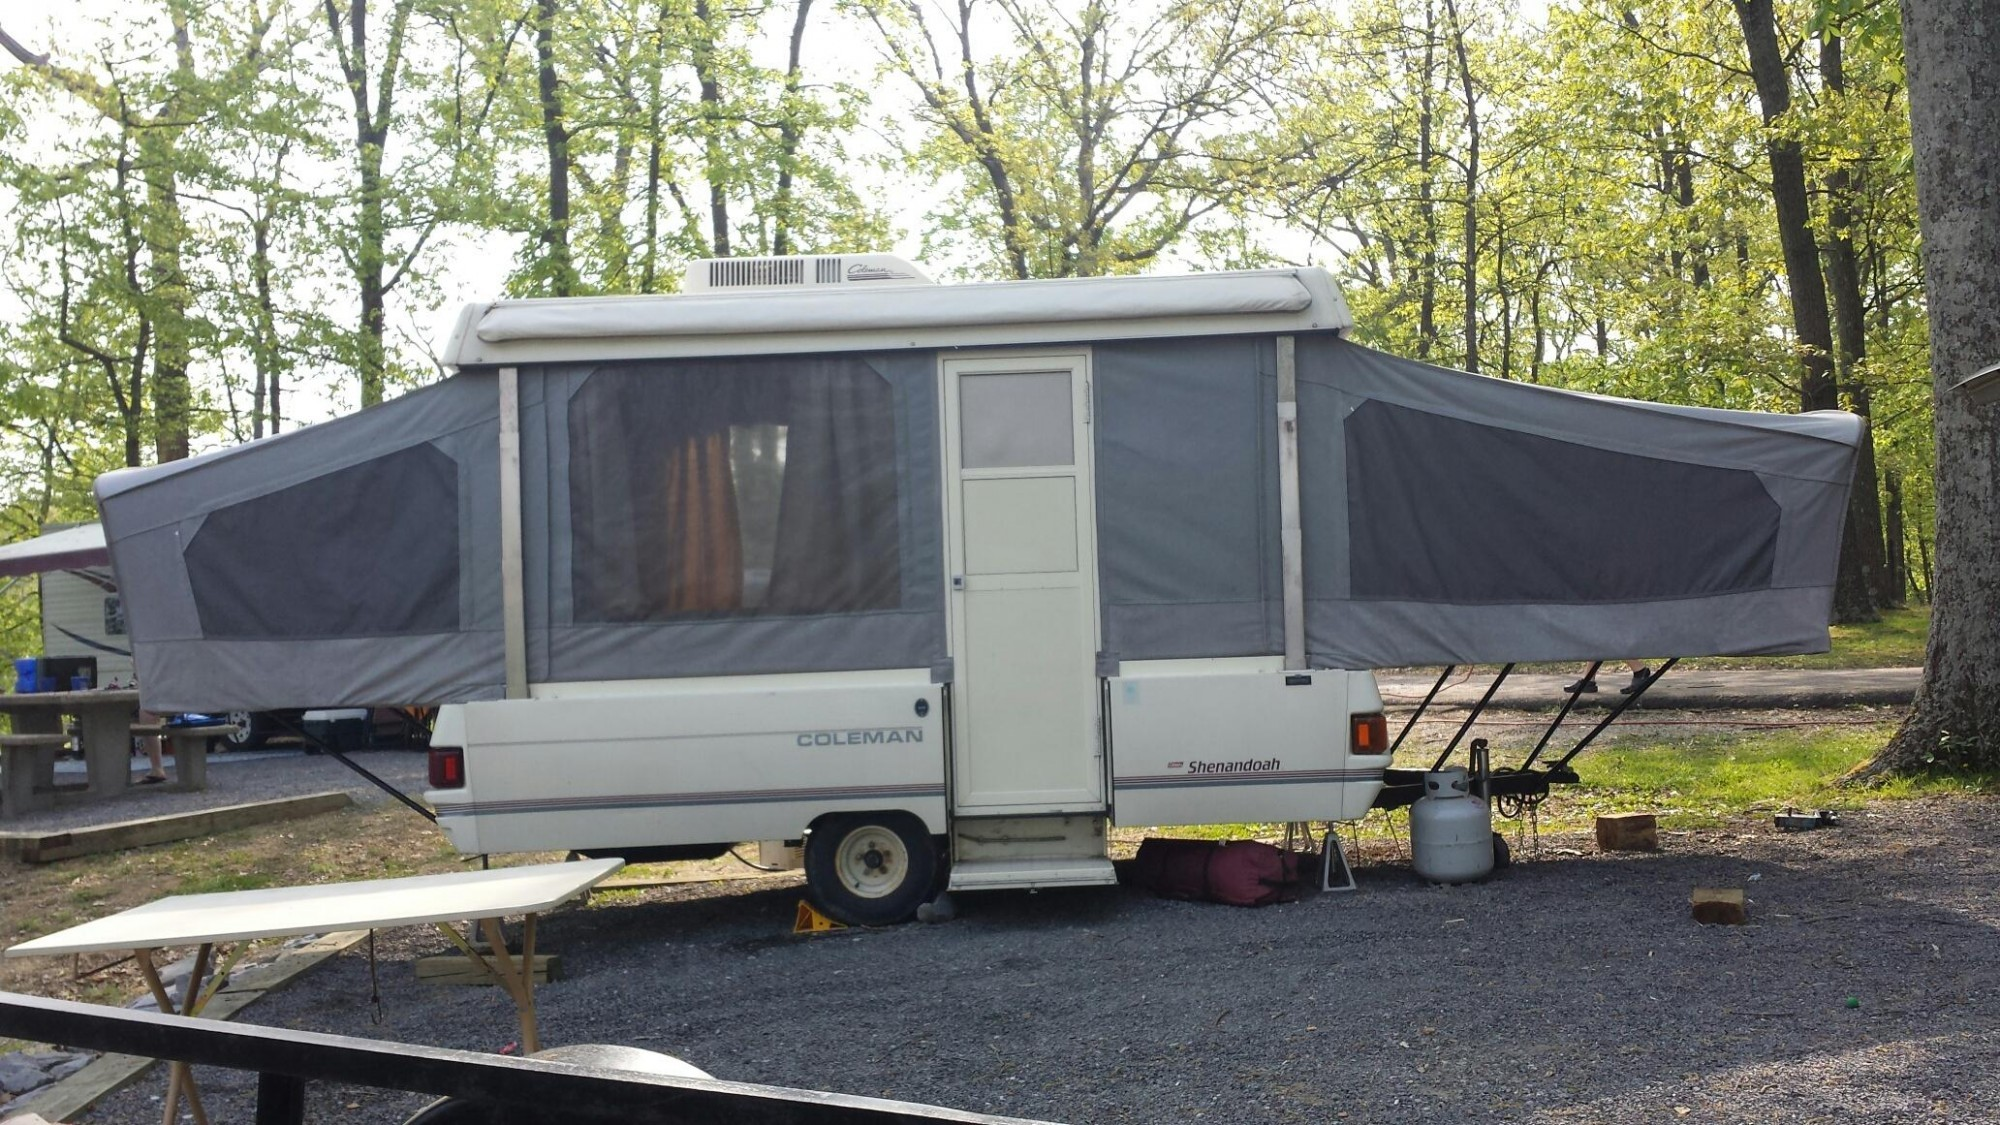 1991 COLEMAN CHESAPEAKE TENT TRAILER Price 299500 Murrysville PA Folding  Camper Sleeping Capacity 6. Album Checkout My Rig